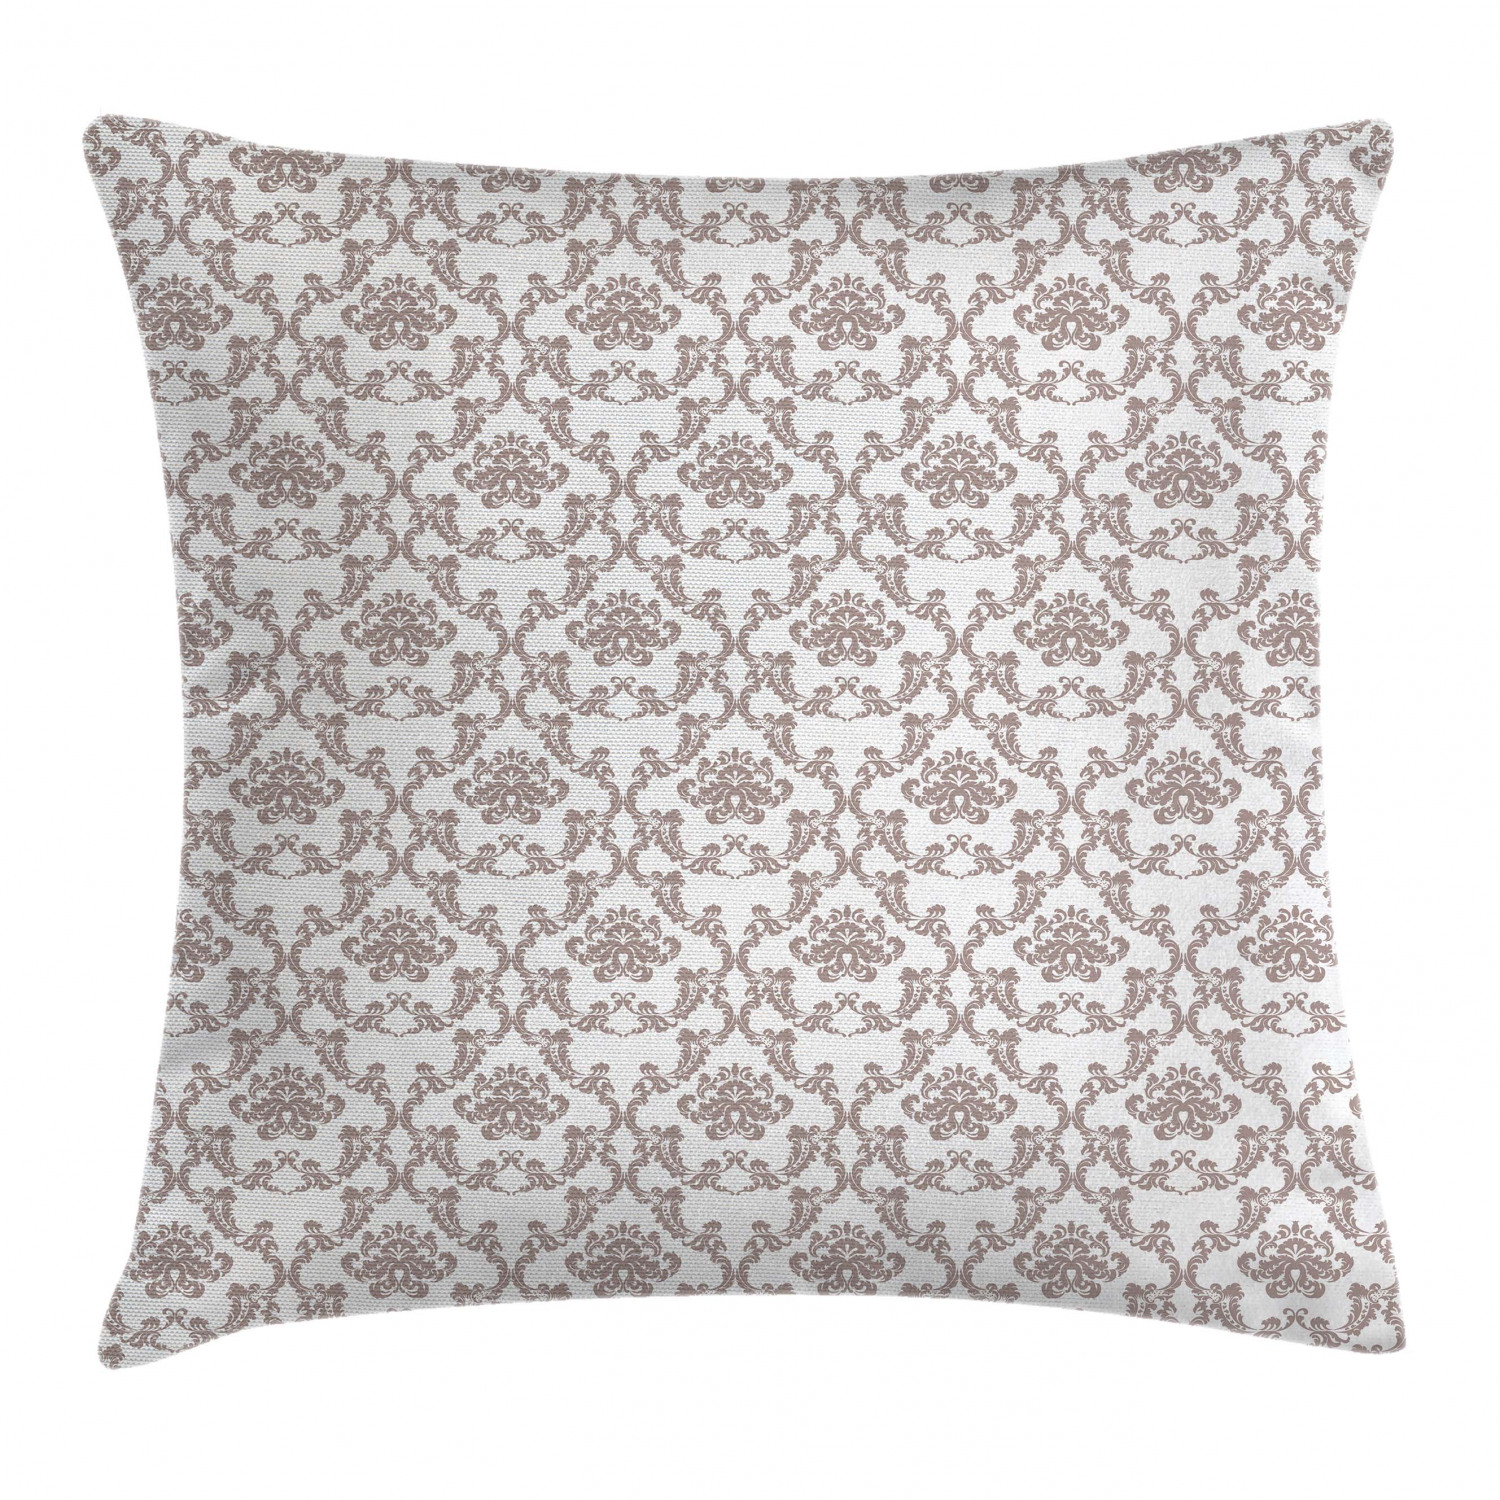 taupe throw pillow cushion cover french style curvy damask pattern nostalgia foliate wealth flora elements historical decorative square accent